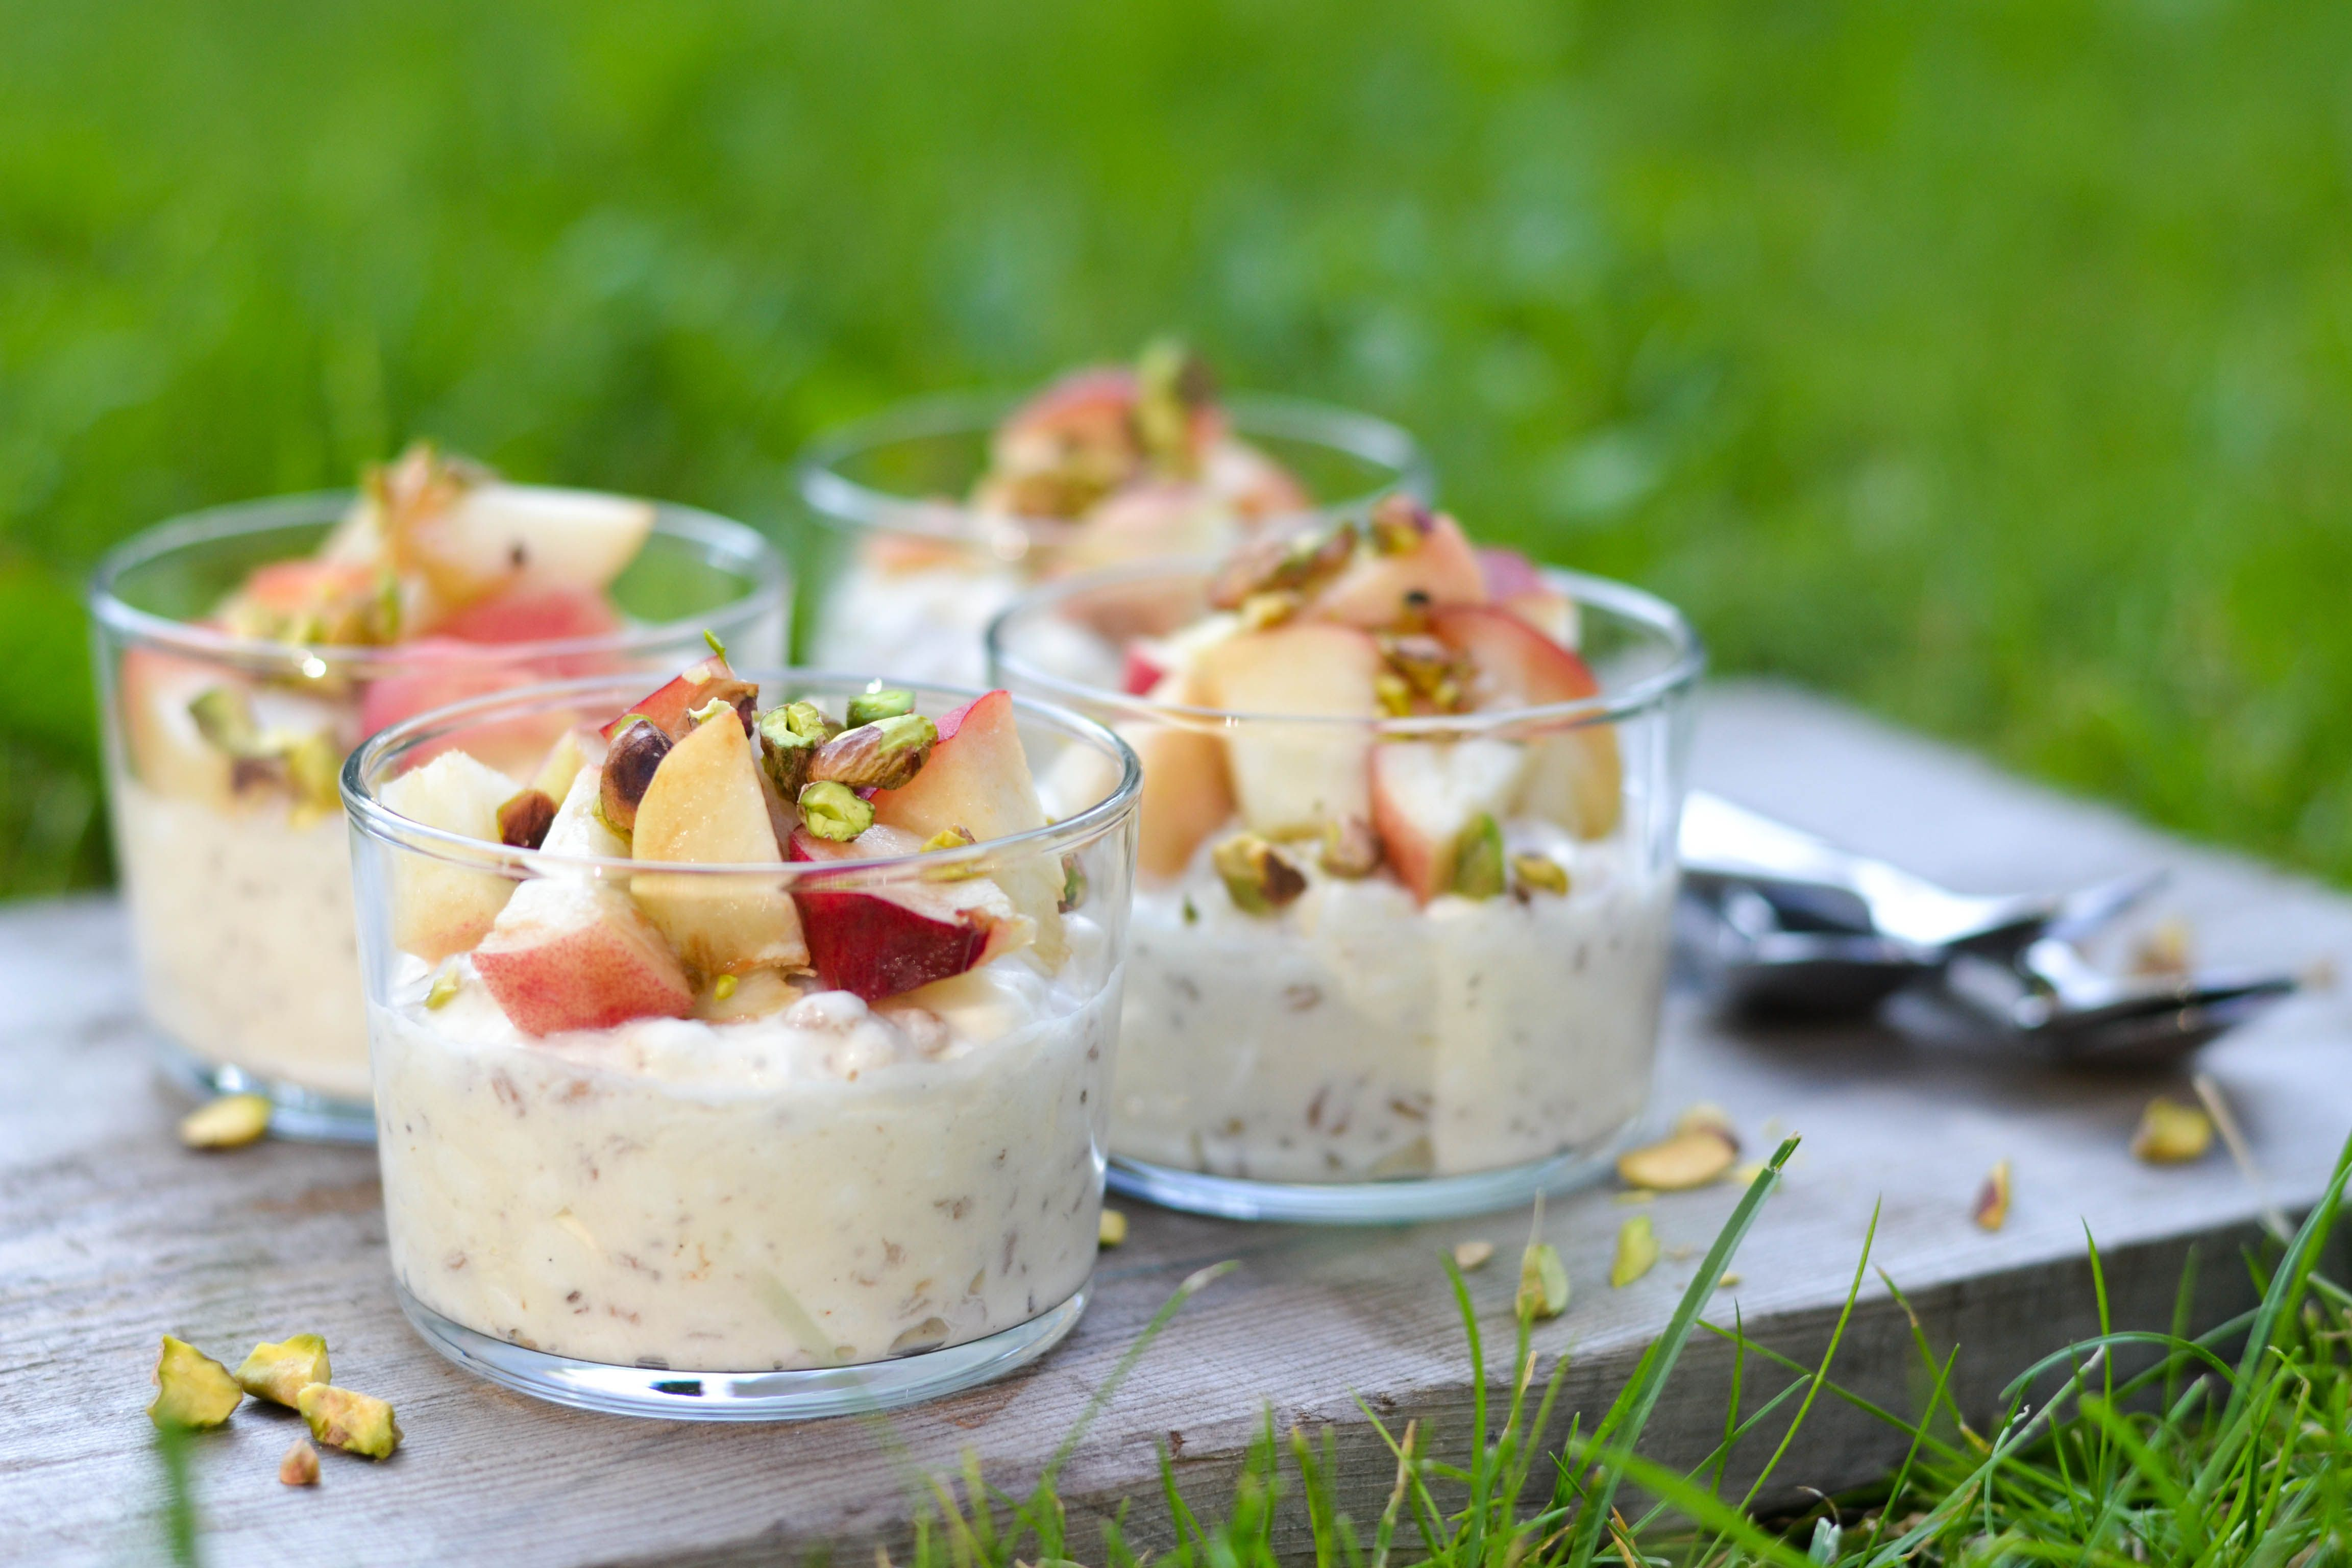 creamy cottage cheese and spelt dessert with peaches and pistachio rh pinterest com desserts to make with cottage cheese desserts to make with cottage cheese